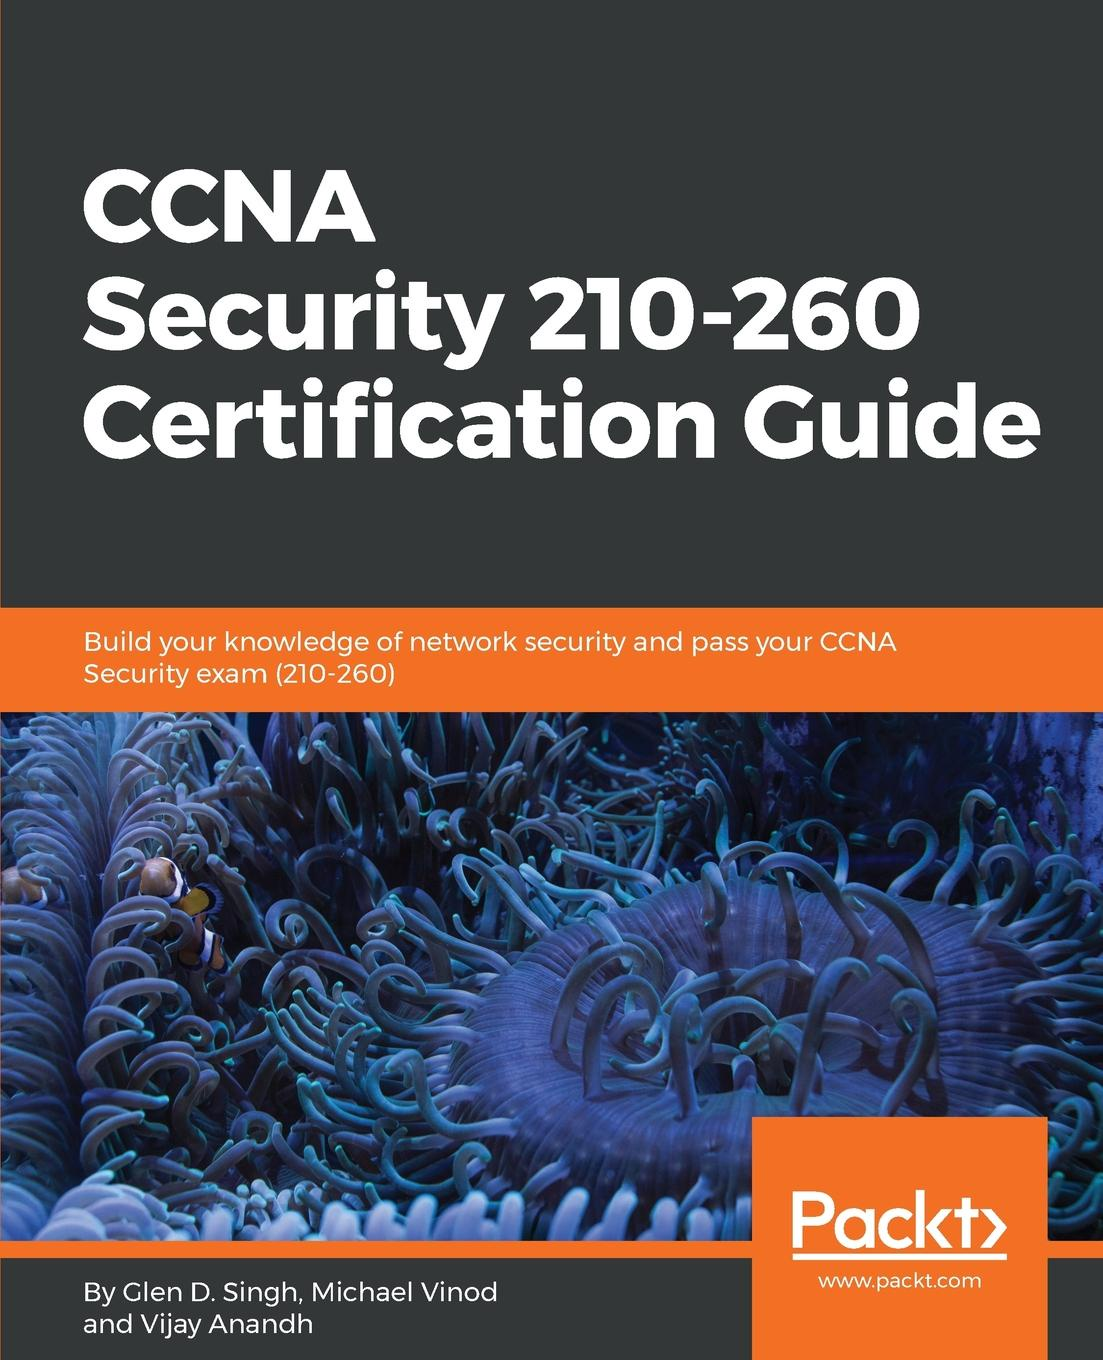 Michael Vinod G, Vijay Anandh, Glen D. Singh CCNA Security 210-260 Certification Guide silviu angelescu ccna certification all in one for dummies